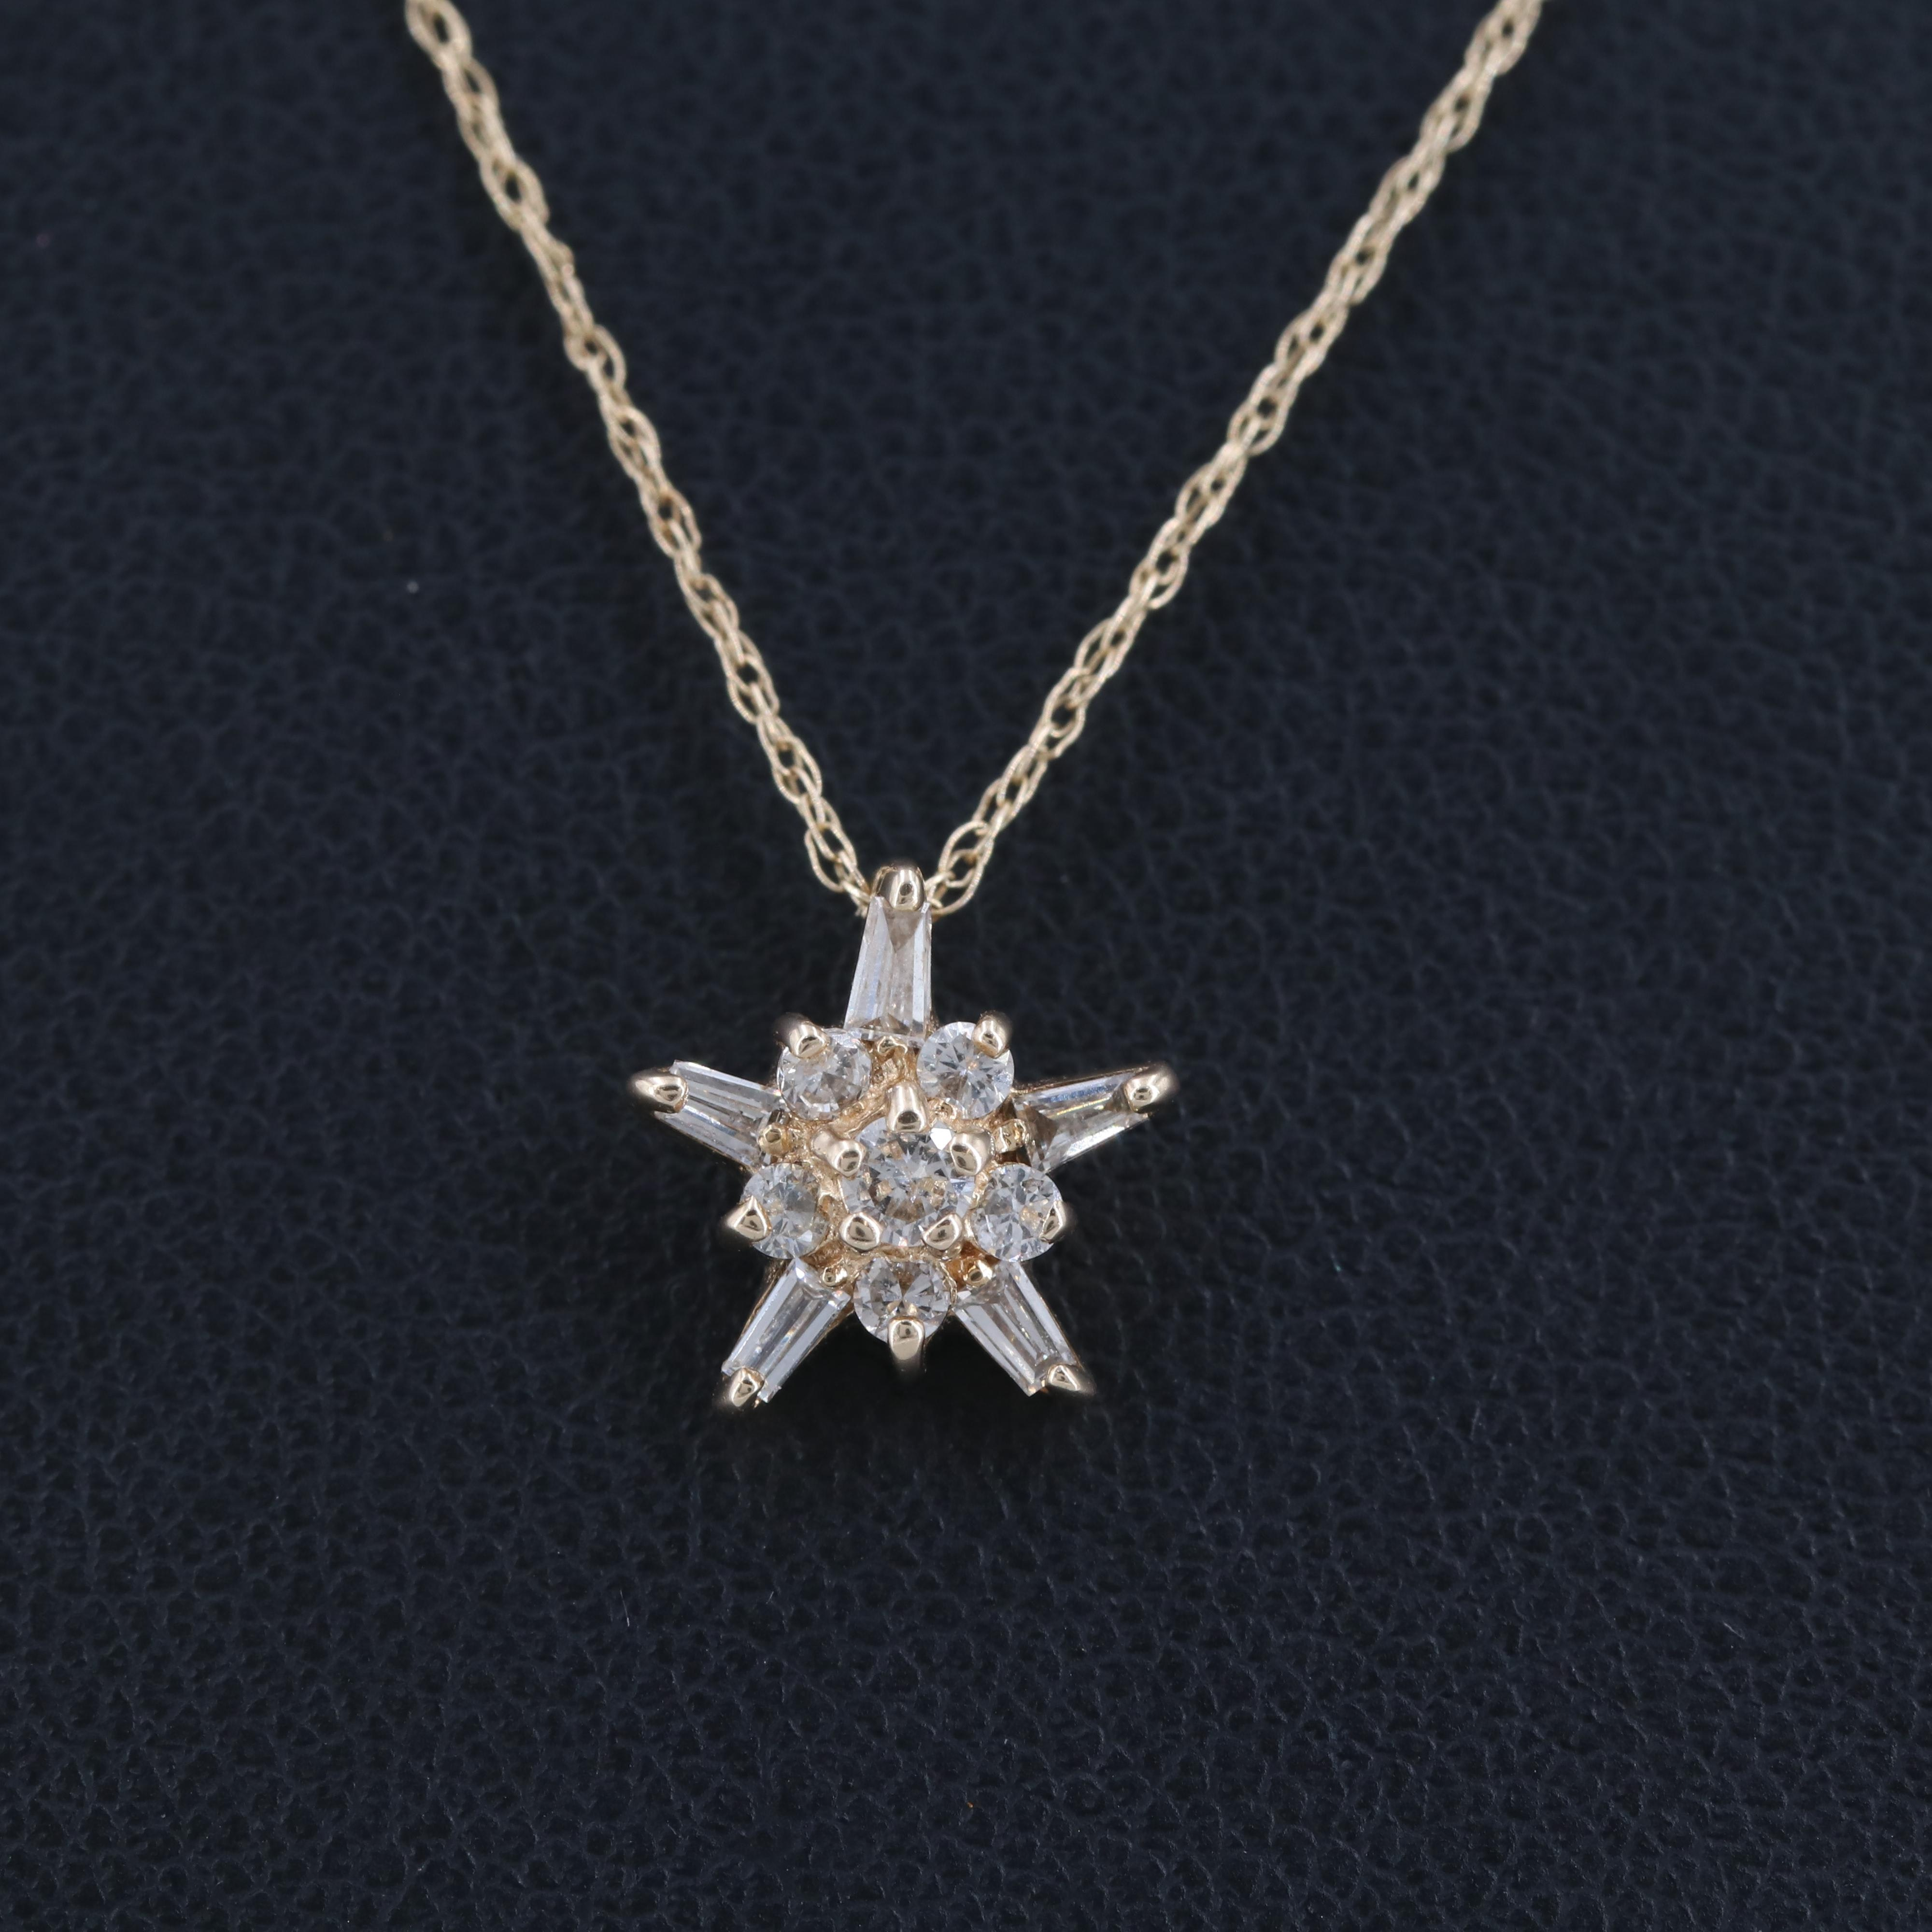 10K and 14K Yellow Gold Diamond Necklace